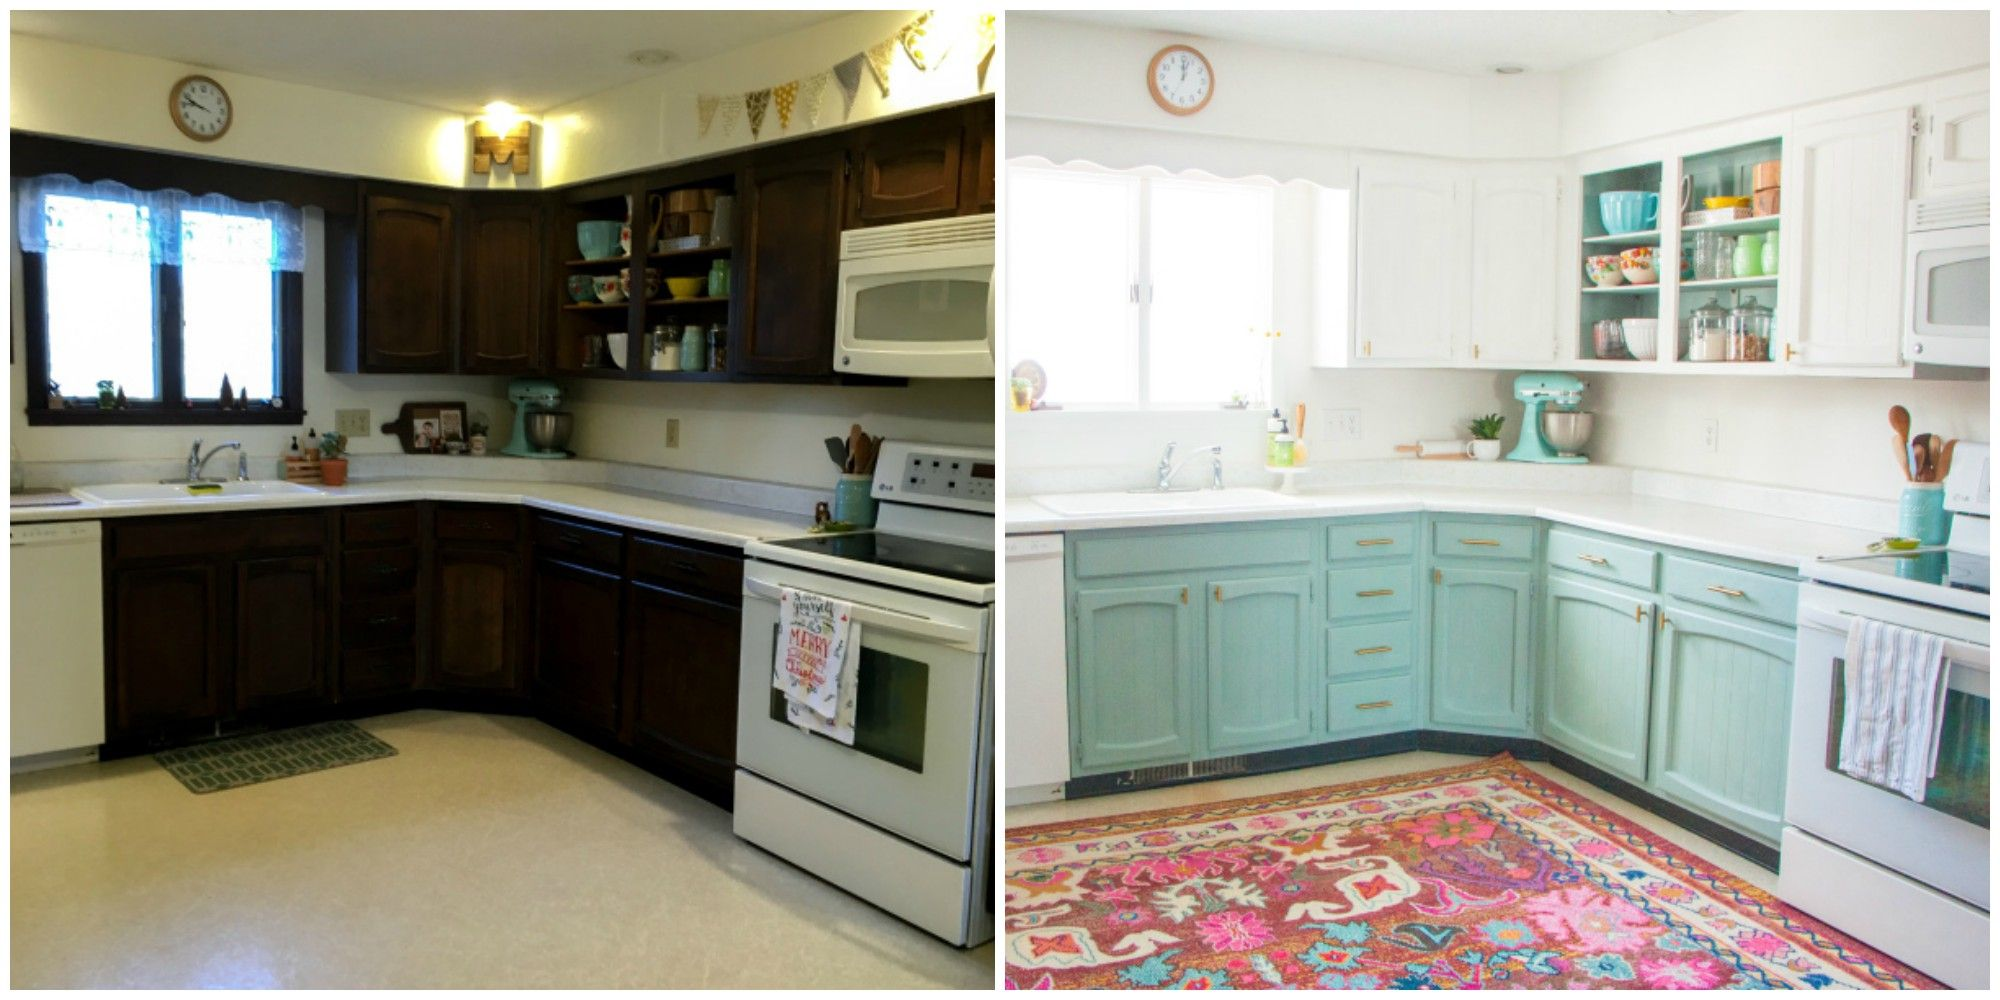 Kitchen Renovation This Bright And Cheery Kitchen Renovation Cost Just 250 Cheap